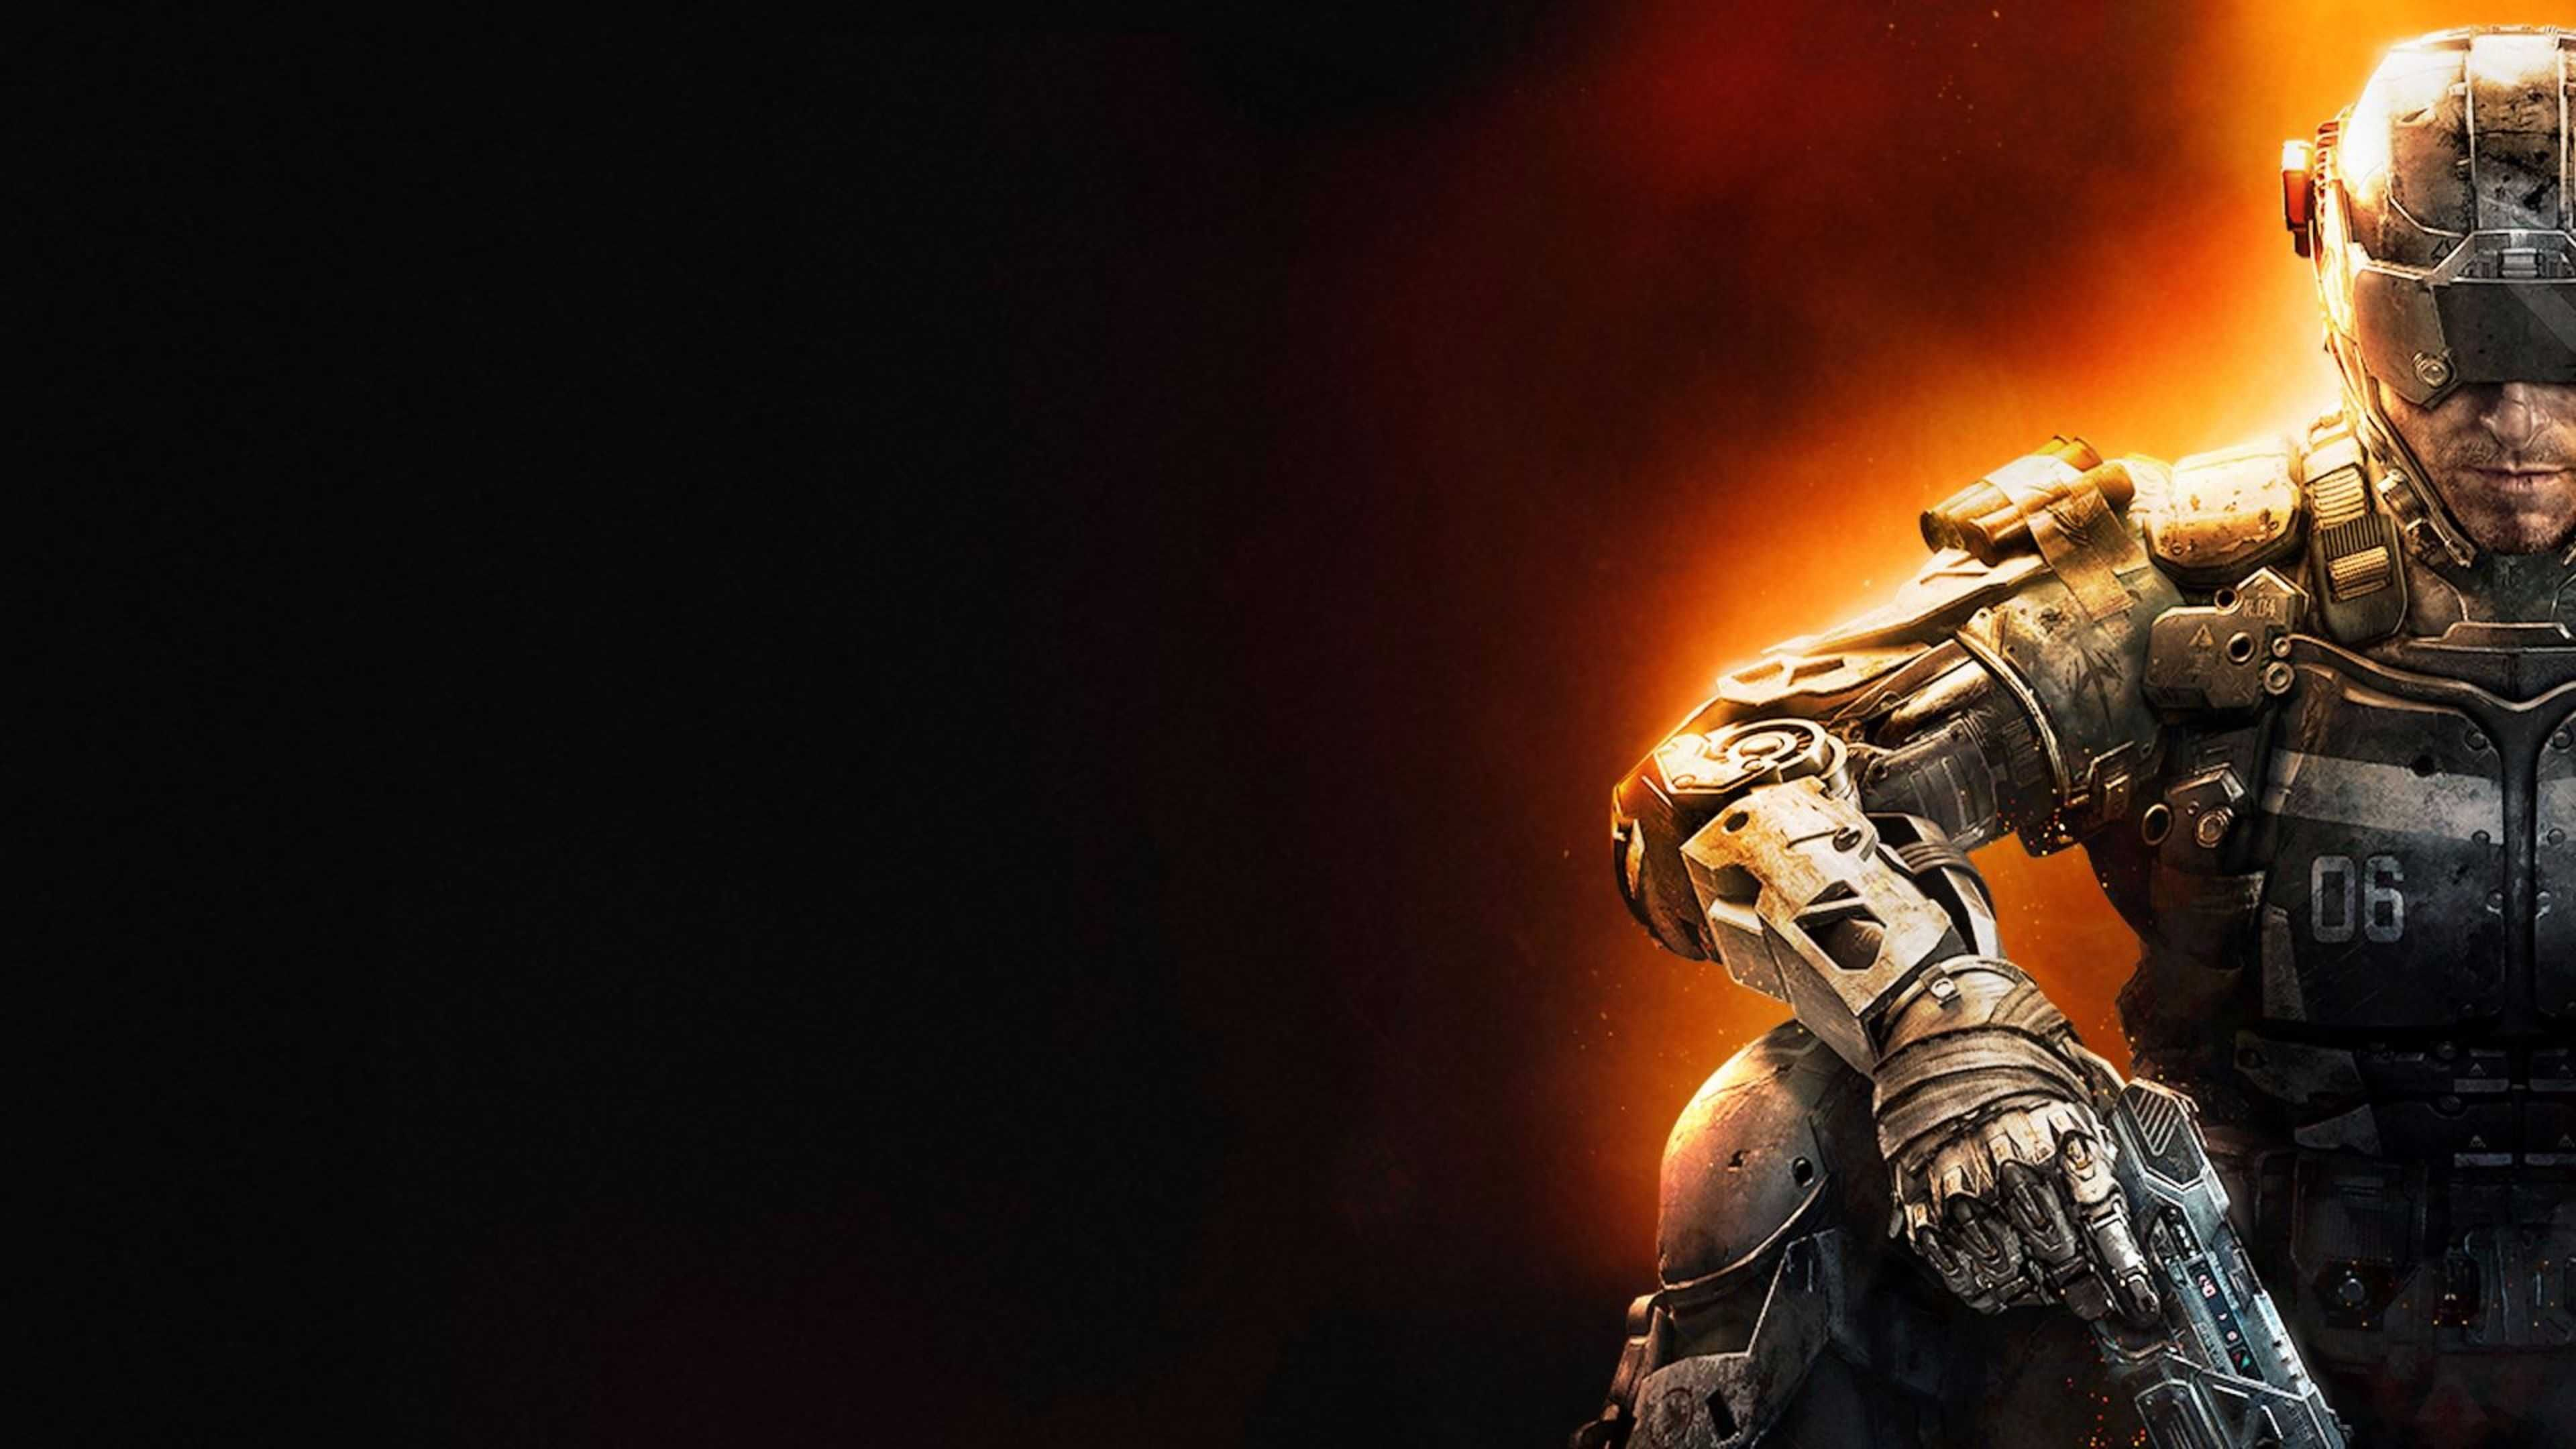 Call Of Duty Black Ops 4 Wallpapers Top Free Call Of Duty